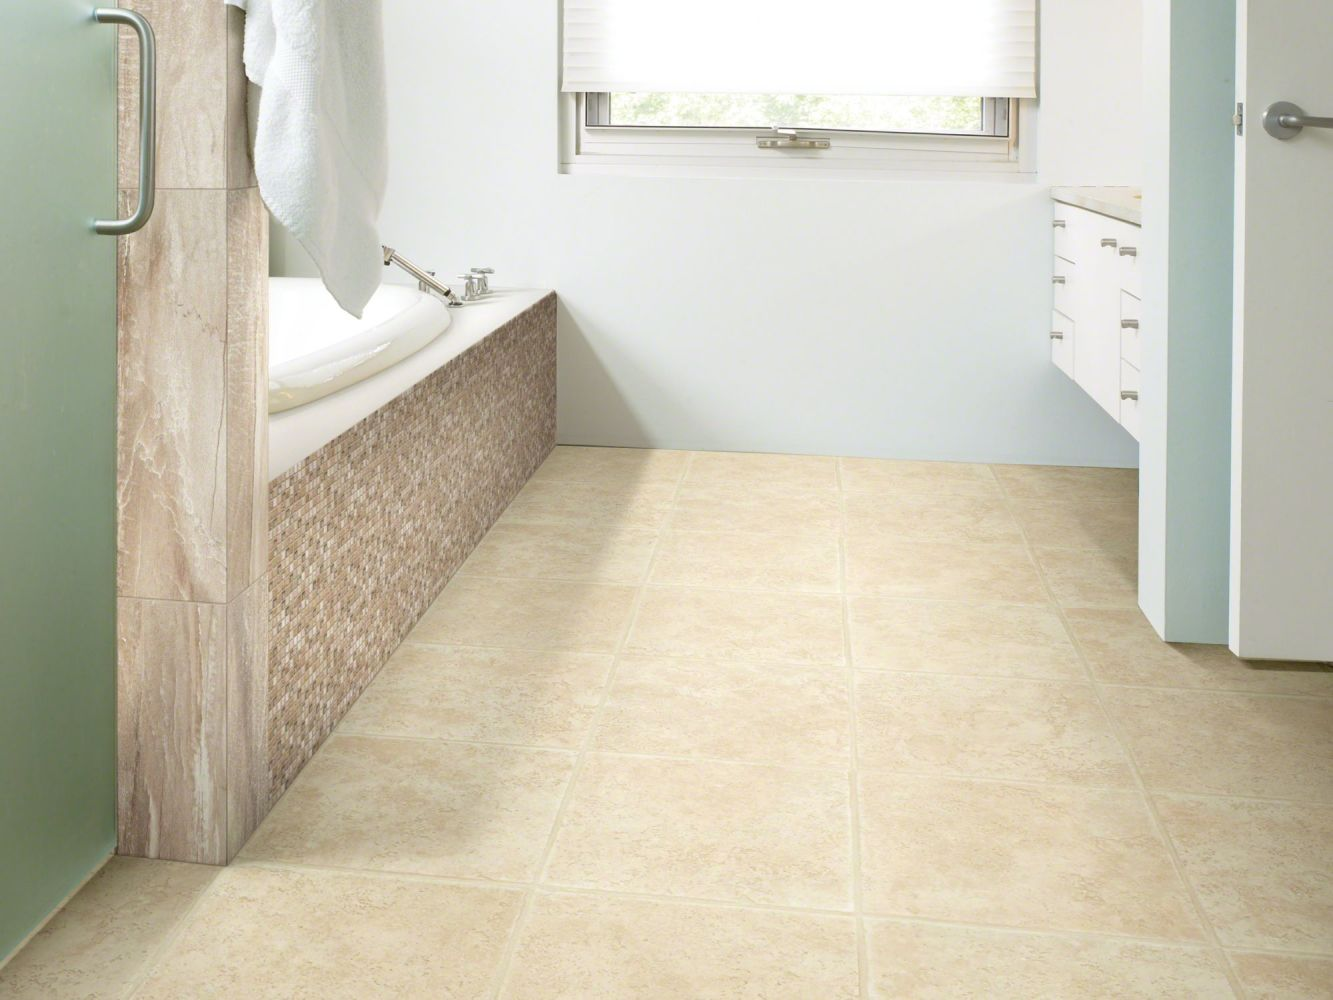 Shaw Floors Resilient Property Solutions Highlands Facet 00133_VG063